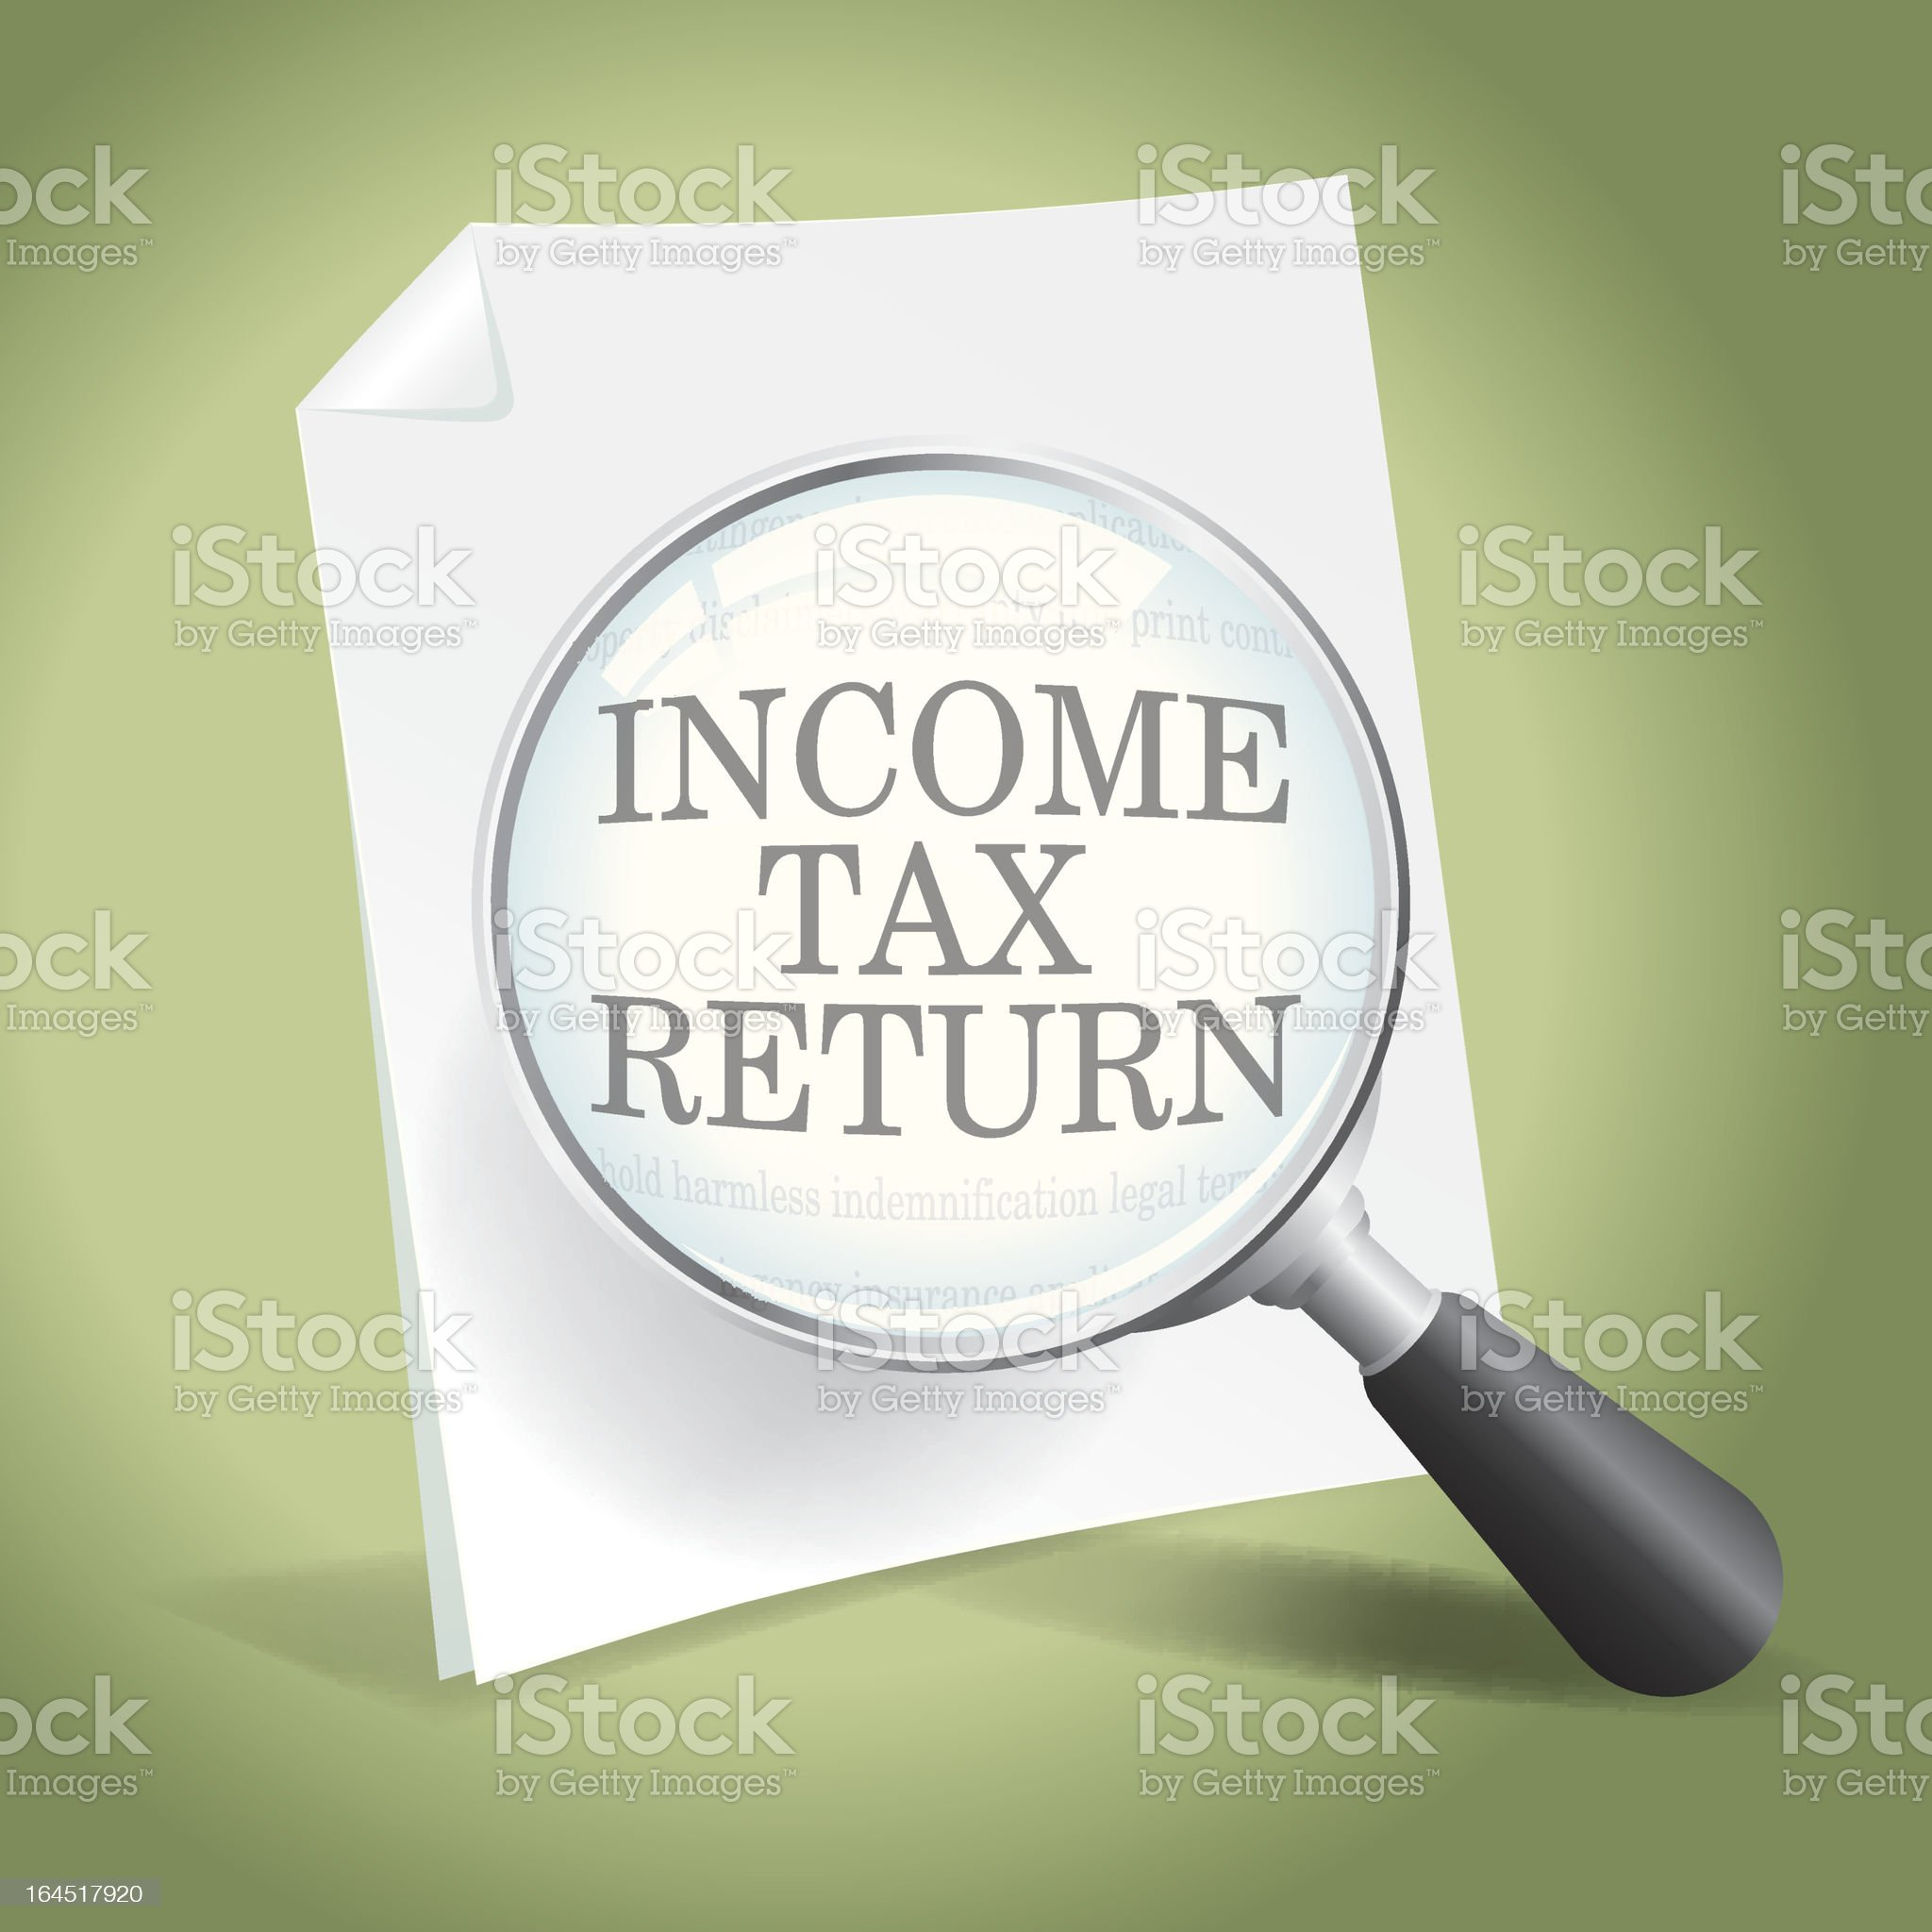 Examining an Income Tax Return royalty-free stock vector art